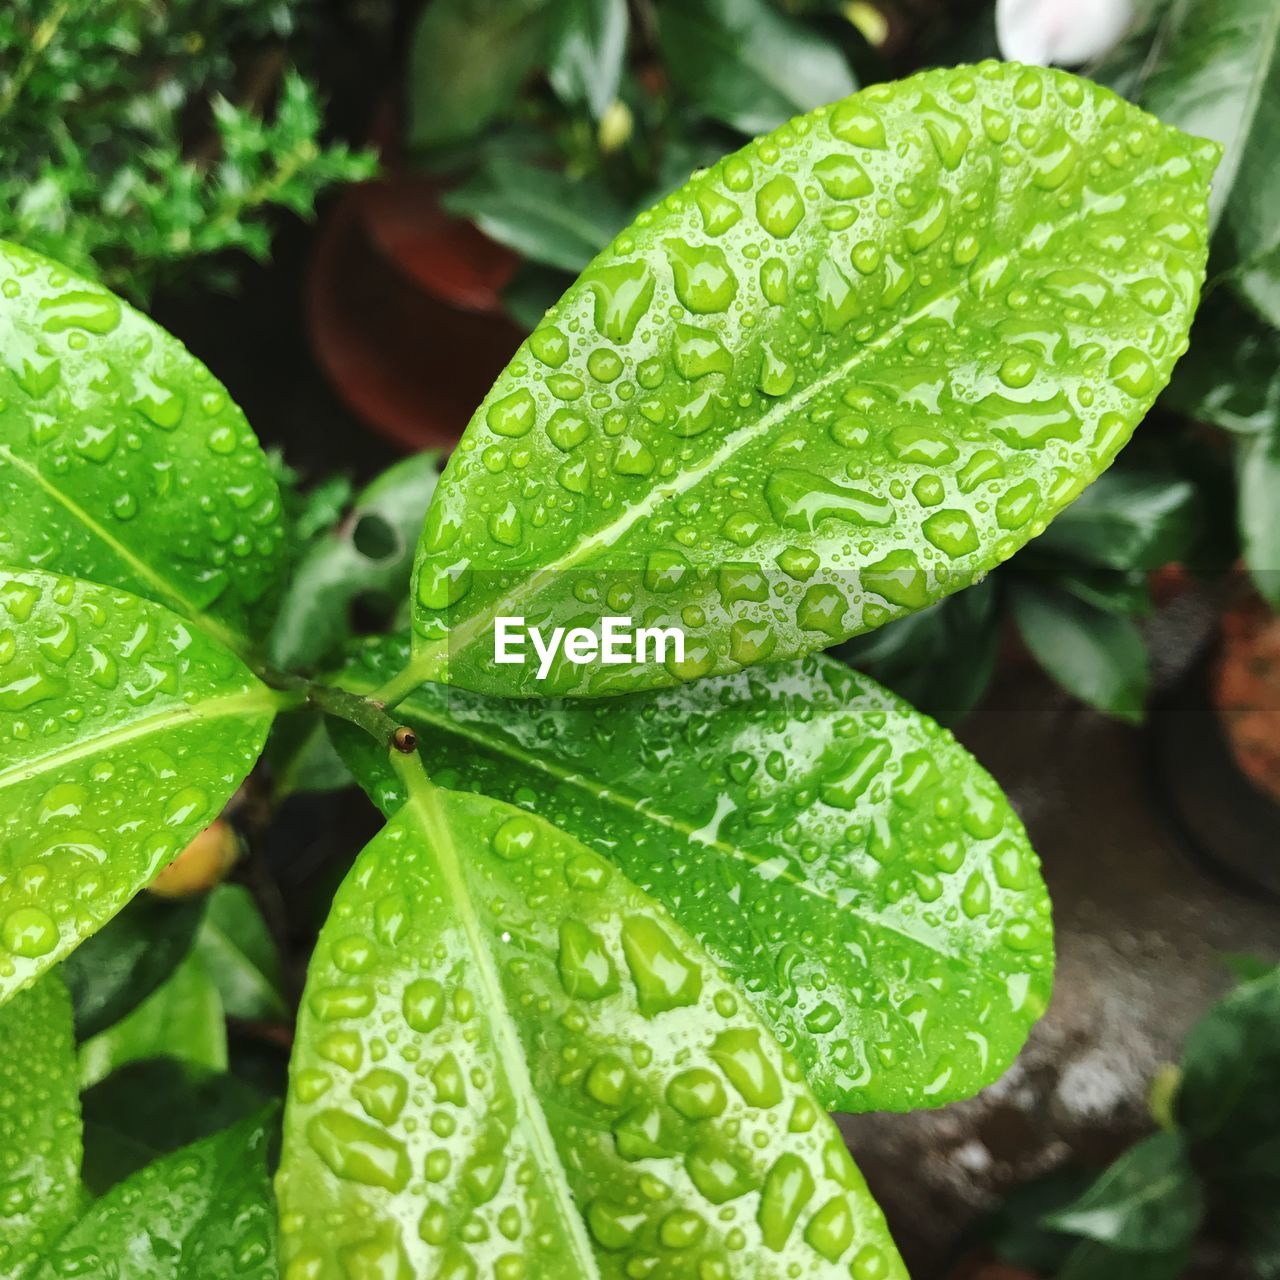 green color, leaf, drop, plant part, water, growth, wet, close-up, beauty in nature, focus on foreground, no people, day, nature, plant, freshness, outdoors, rain, selective focus, rainy season, leaves, raindrop, dew